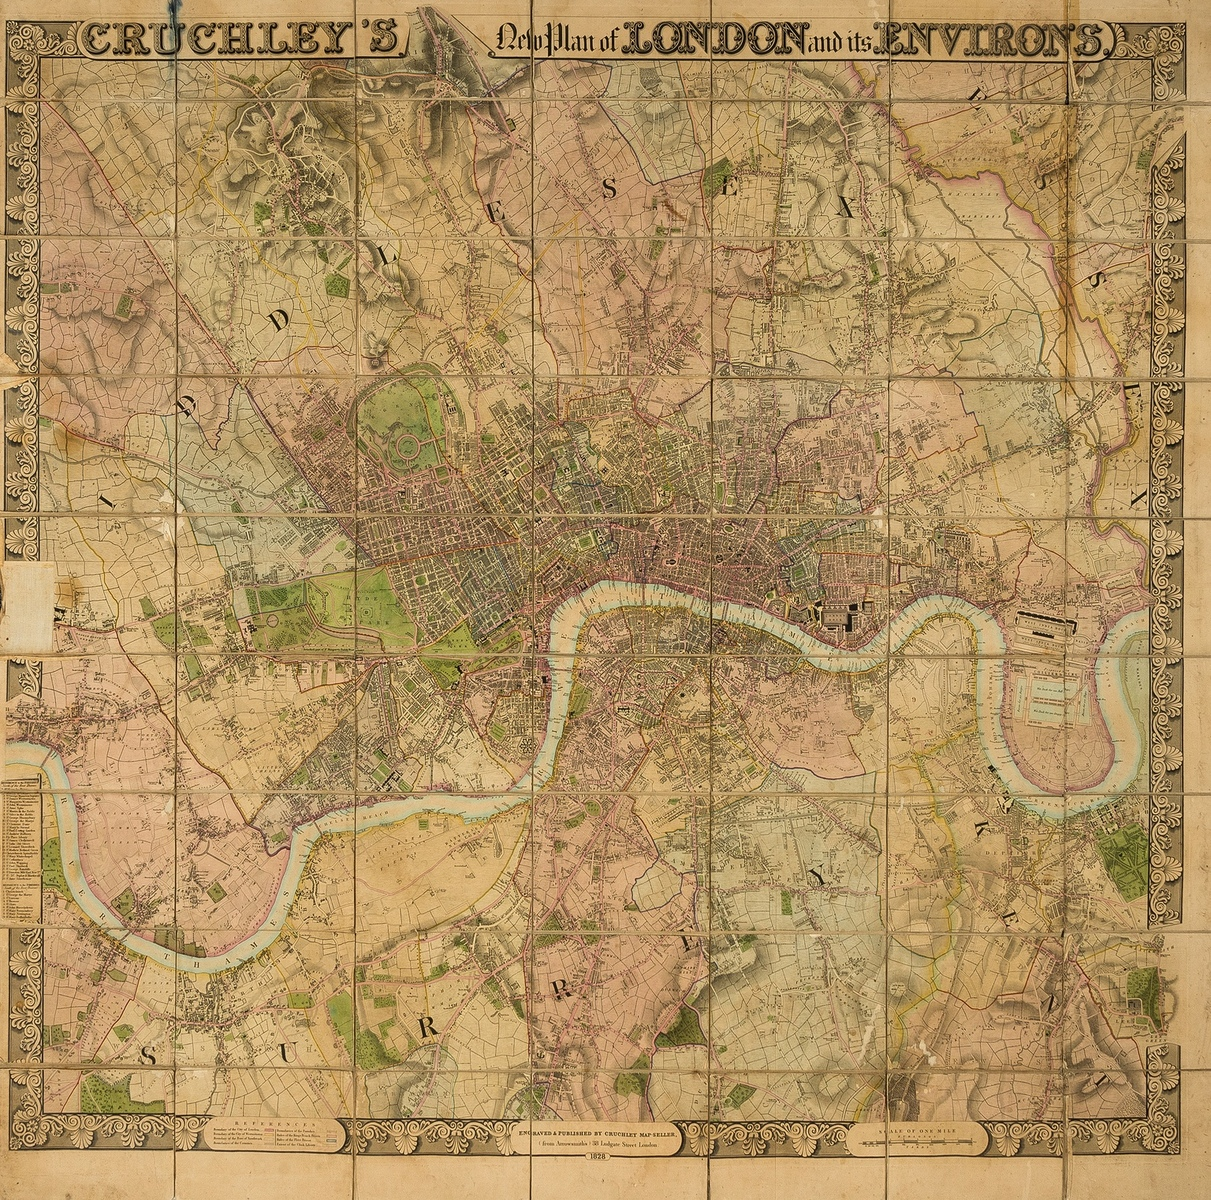 London.- Cruchley (George Frederick) Cruchley's New Plan of London and its Environs, 1828.